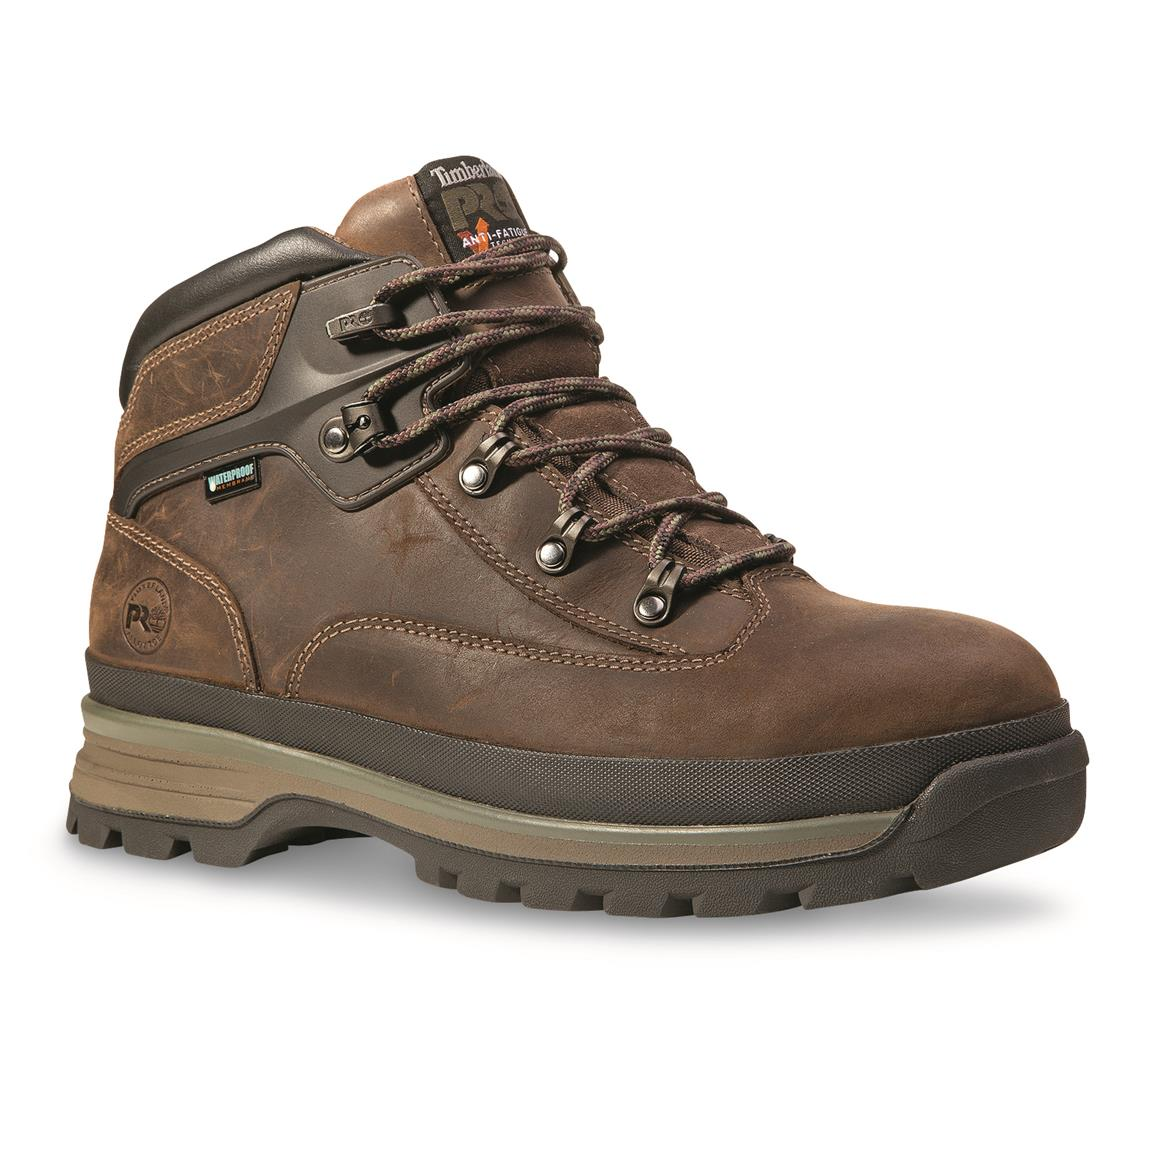 d17021de3e0 Timberland PRO Men's Euro Hiker Alloy Toe Work Boot – Army Navy Now